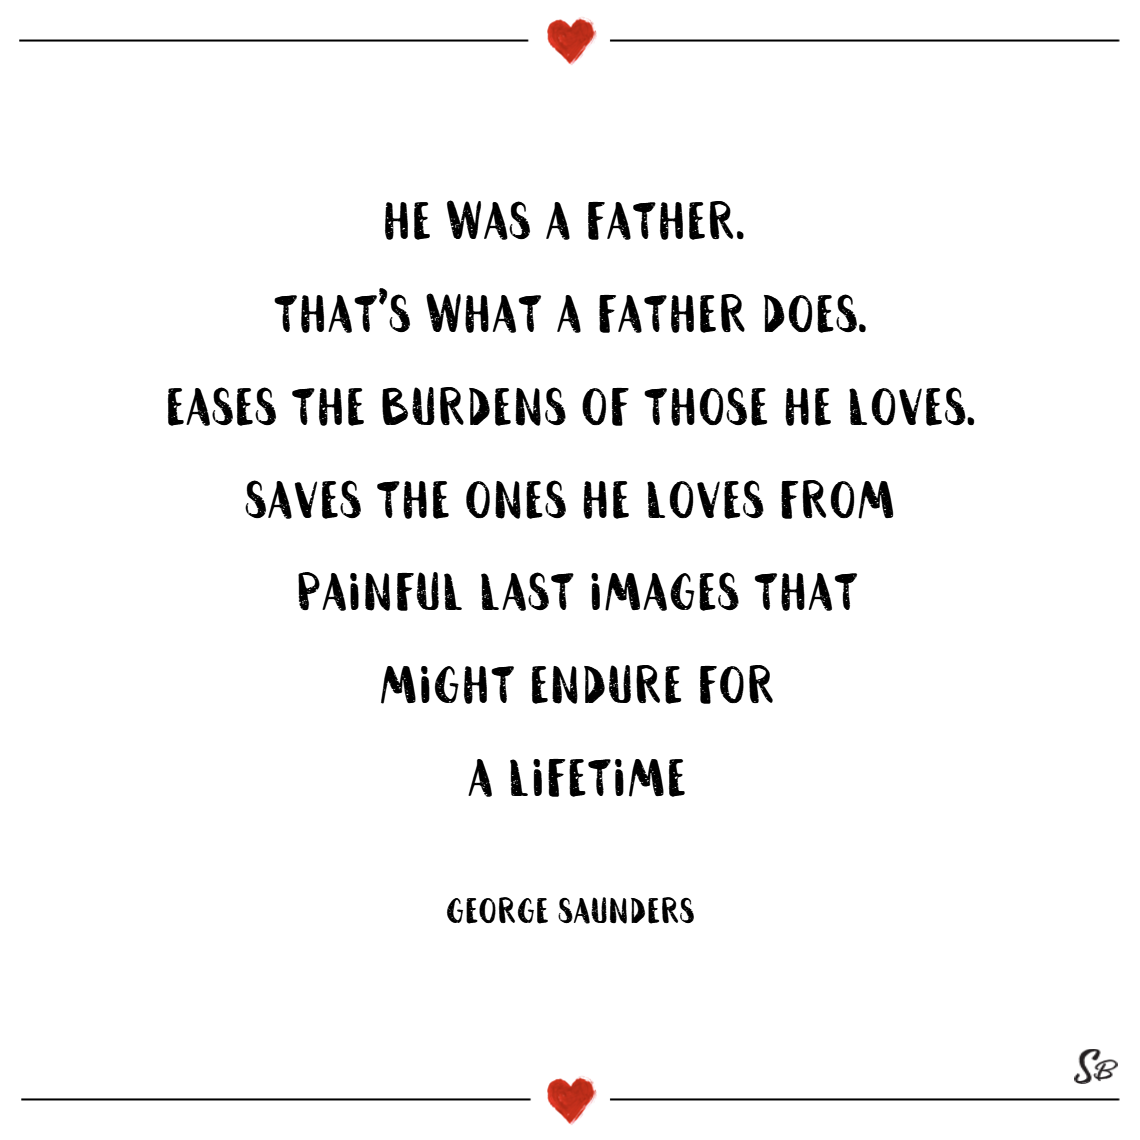 He was a father. that's what a father does. eases the burdens of those he loves. saves the ones he loves from painful last images that might endure for a lifetime. – george saunders